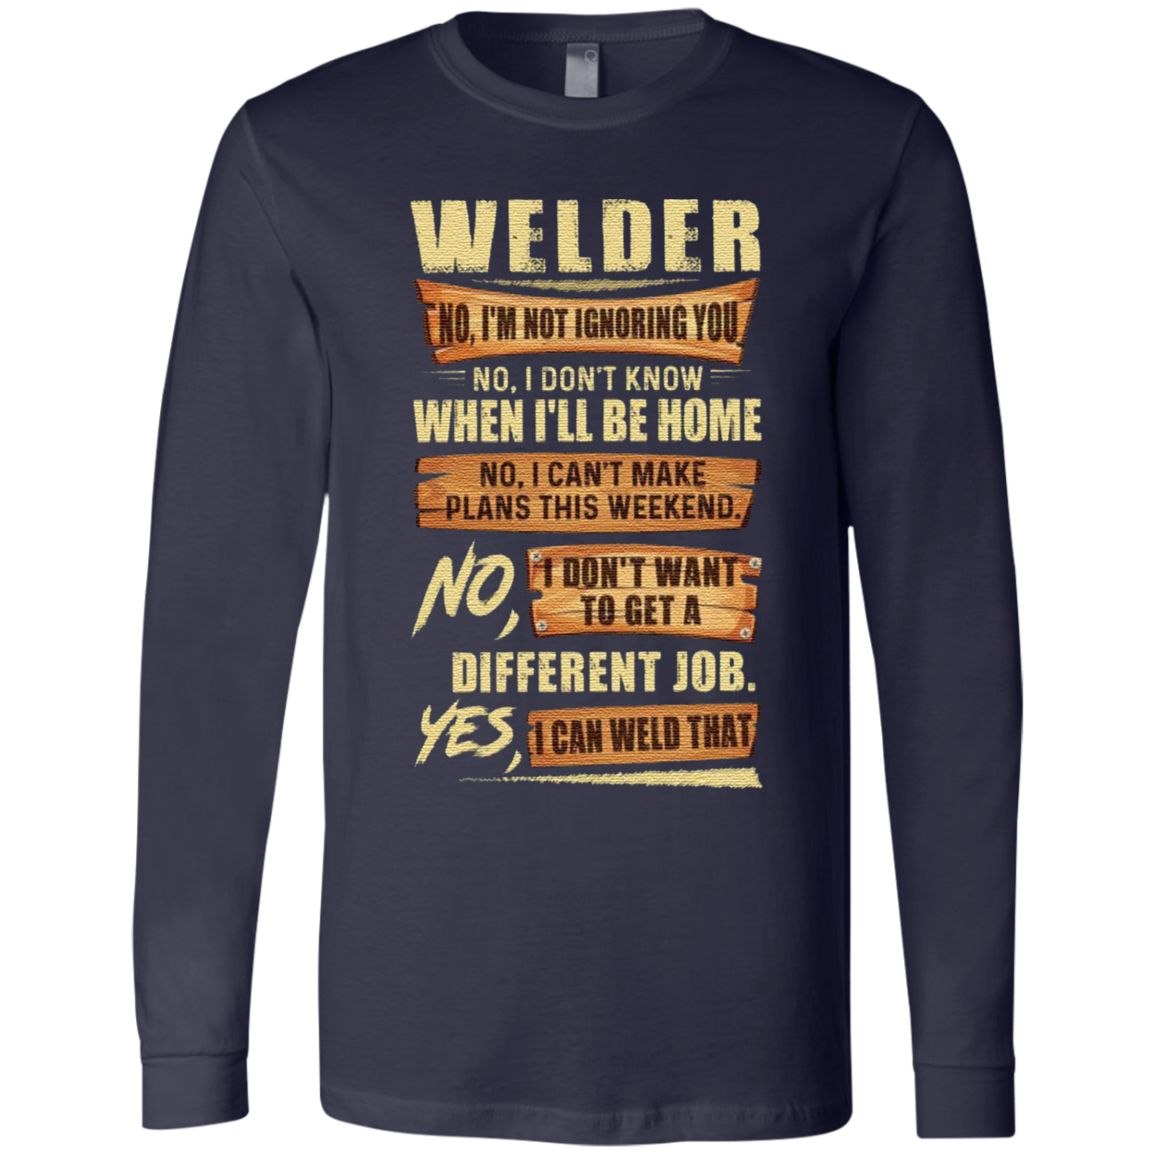 Welder No I'm Not Ignoring You No I Don't Know When I'll Be Home Different Job Yes I Can Weld That T Shirt